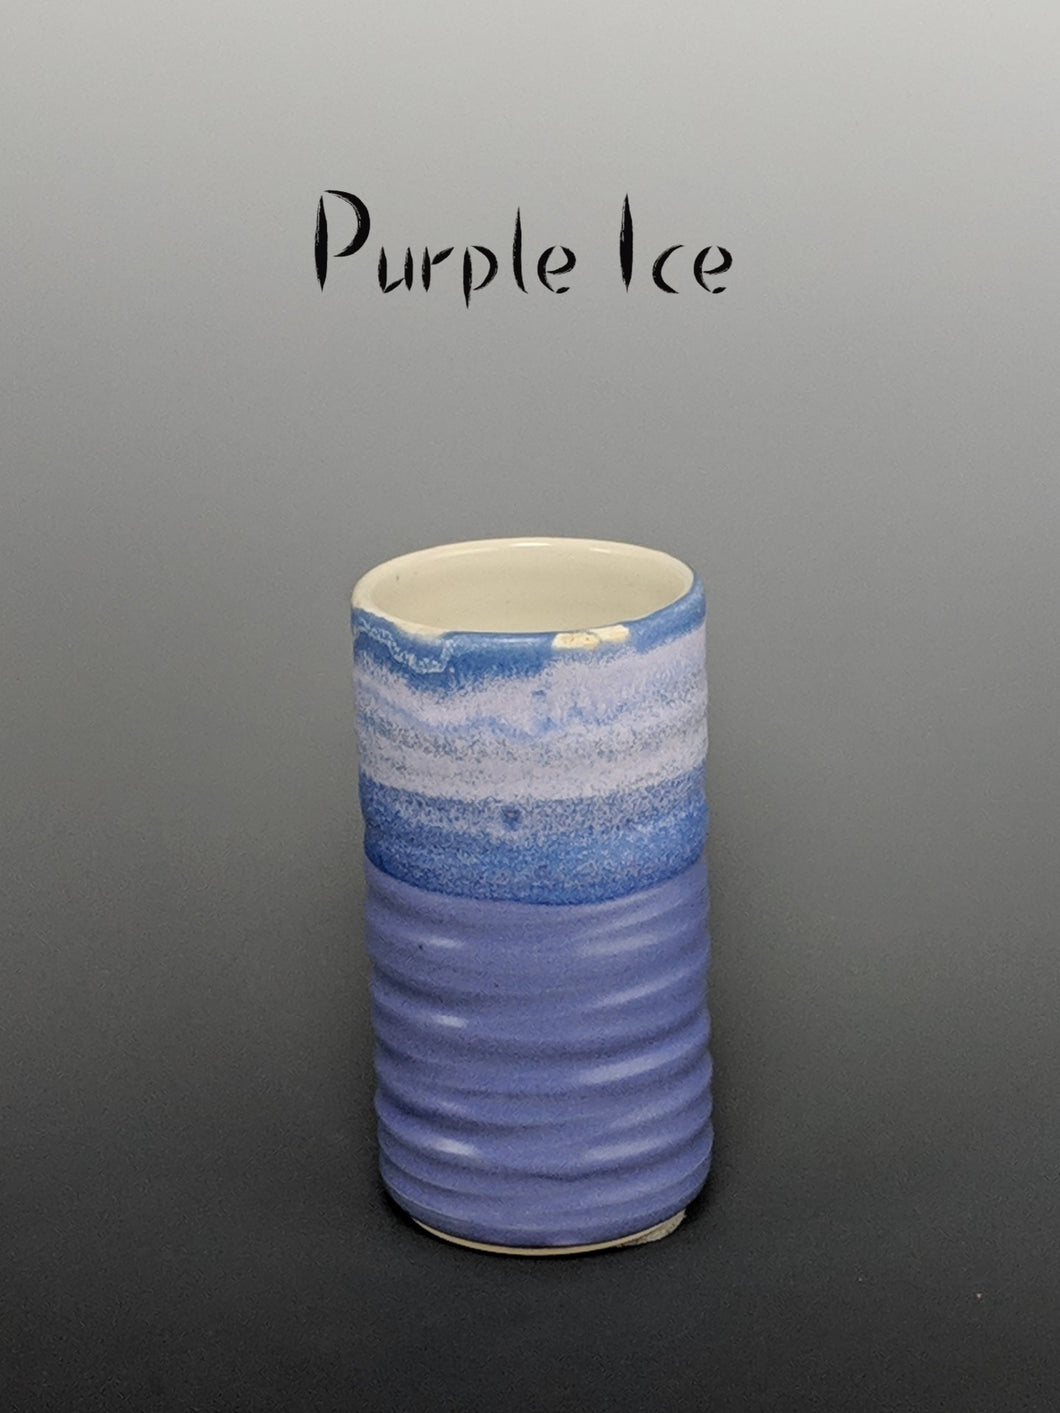 Pottery cup, tumbler style